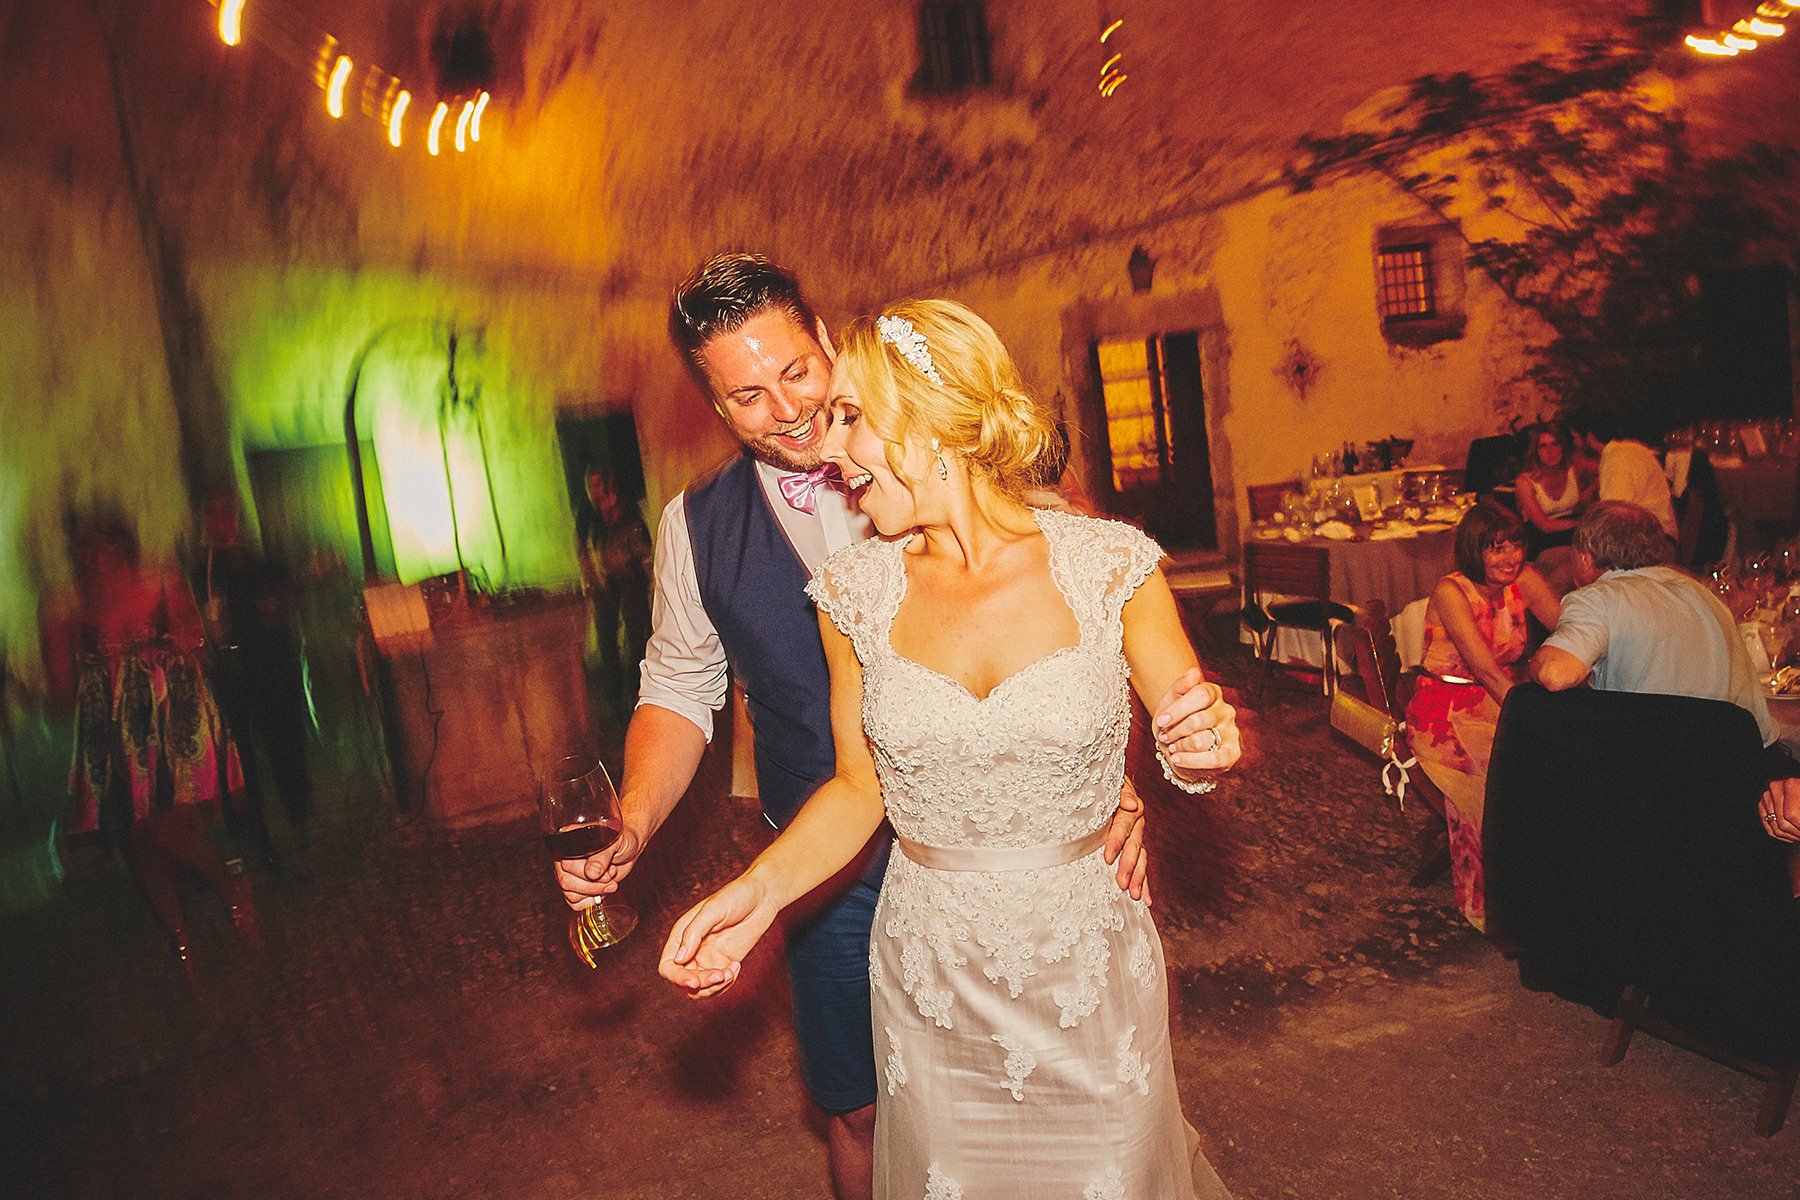 469 - Destination wedding in a magical Mallorca